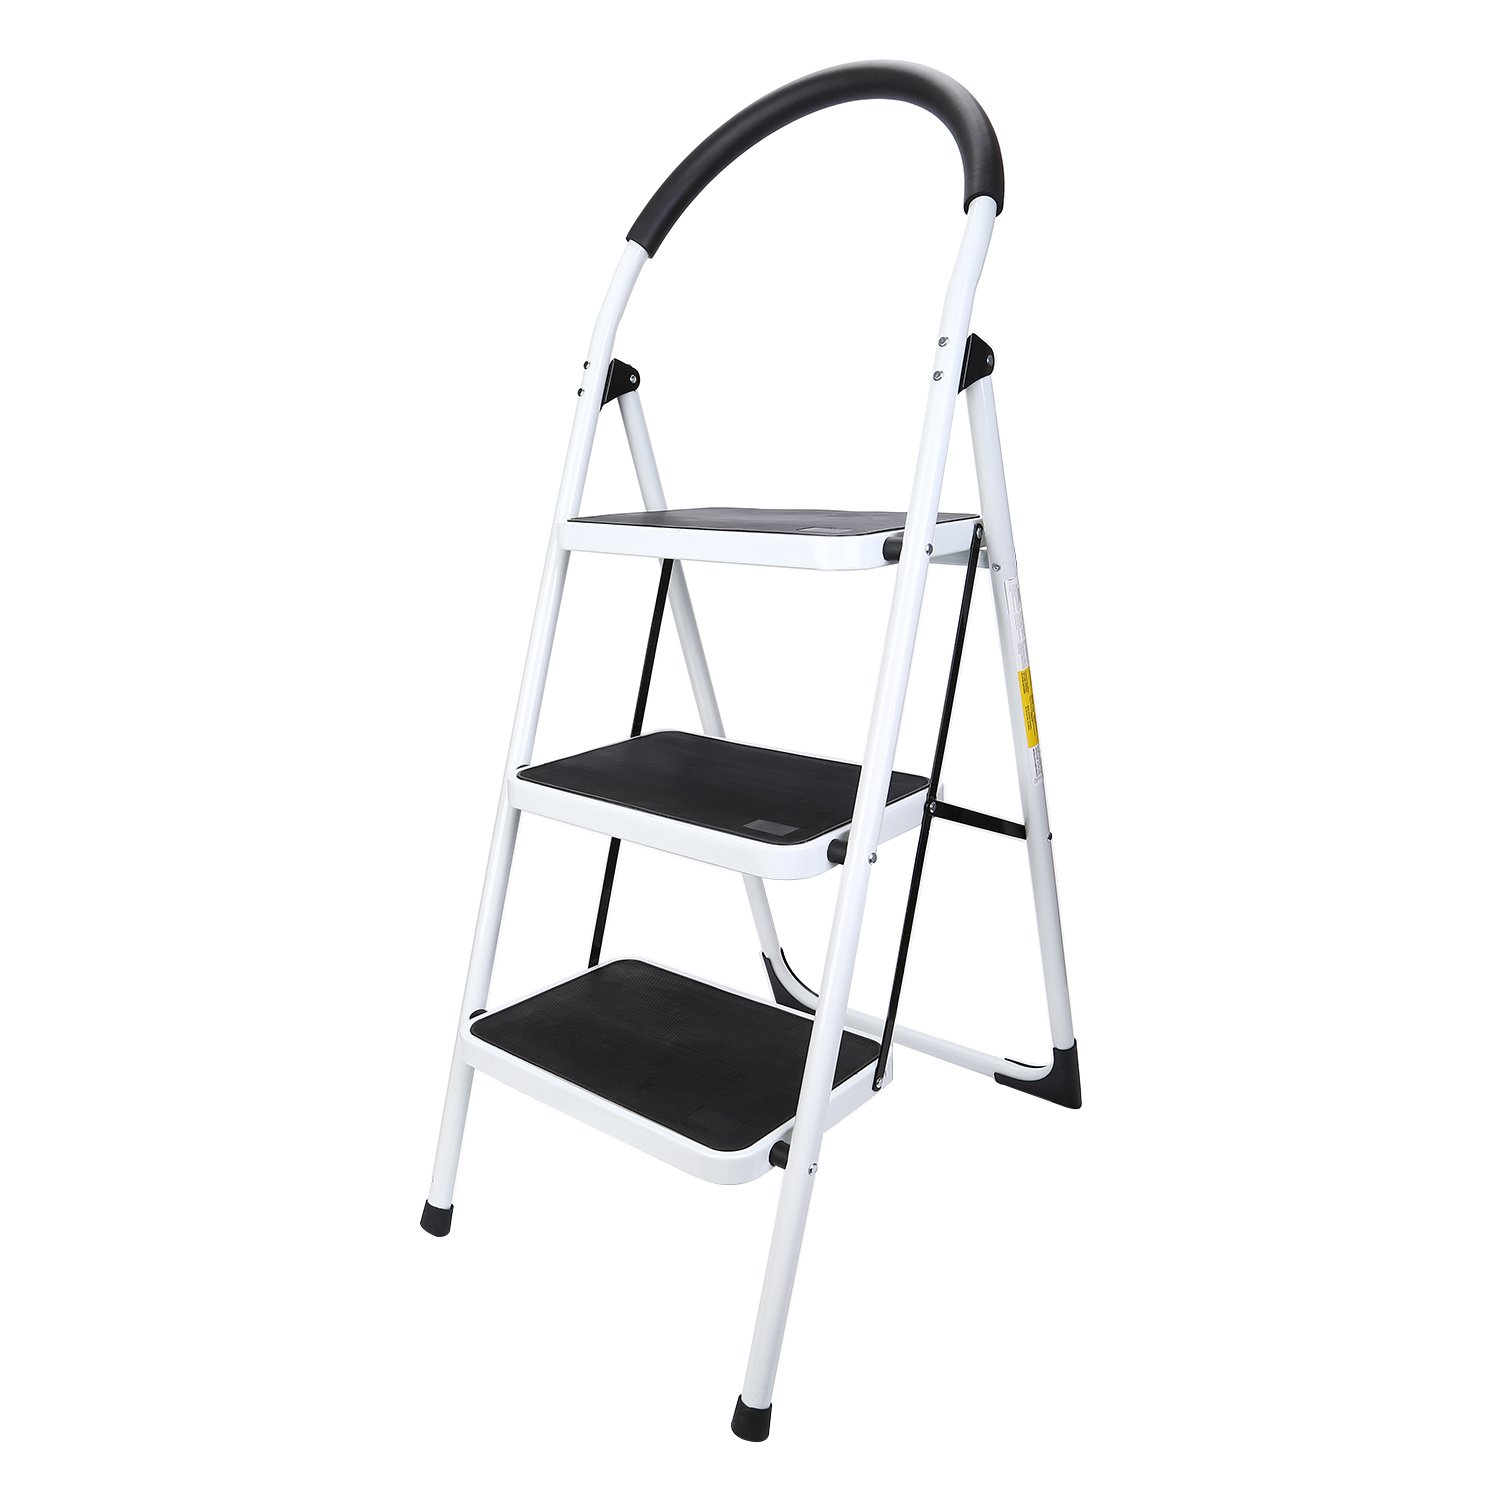 Maddott Folding 3 Step Ladder Step Stool Stepladders with Handgrip Anti-slip and Wide Pedal Sturdy Steel Ladder 330lbs White and Black (3.8 feet)